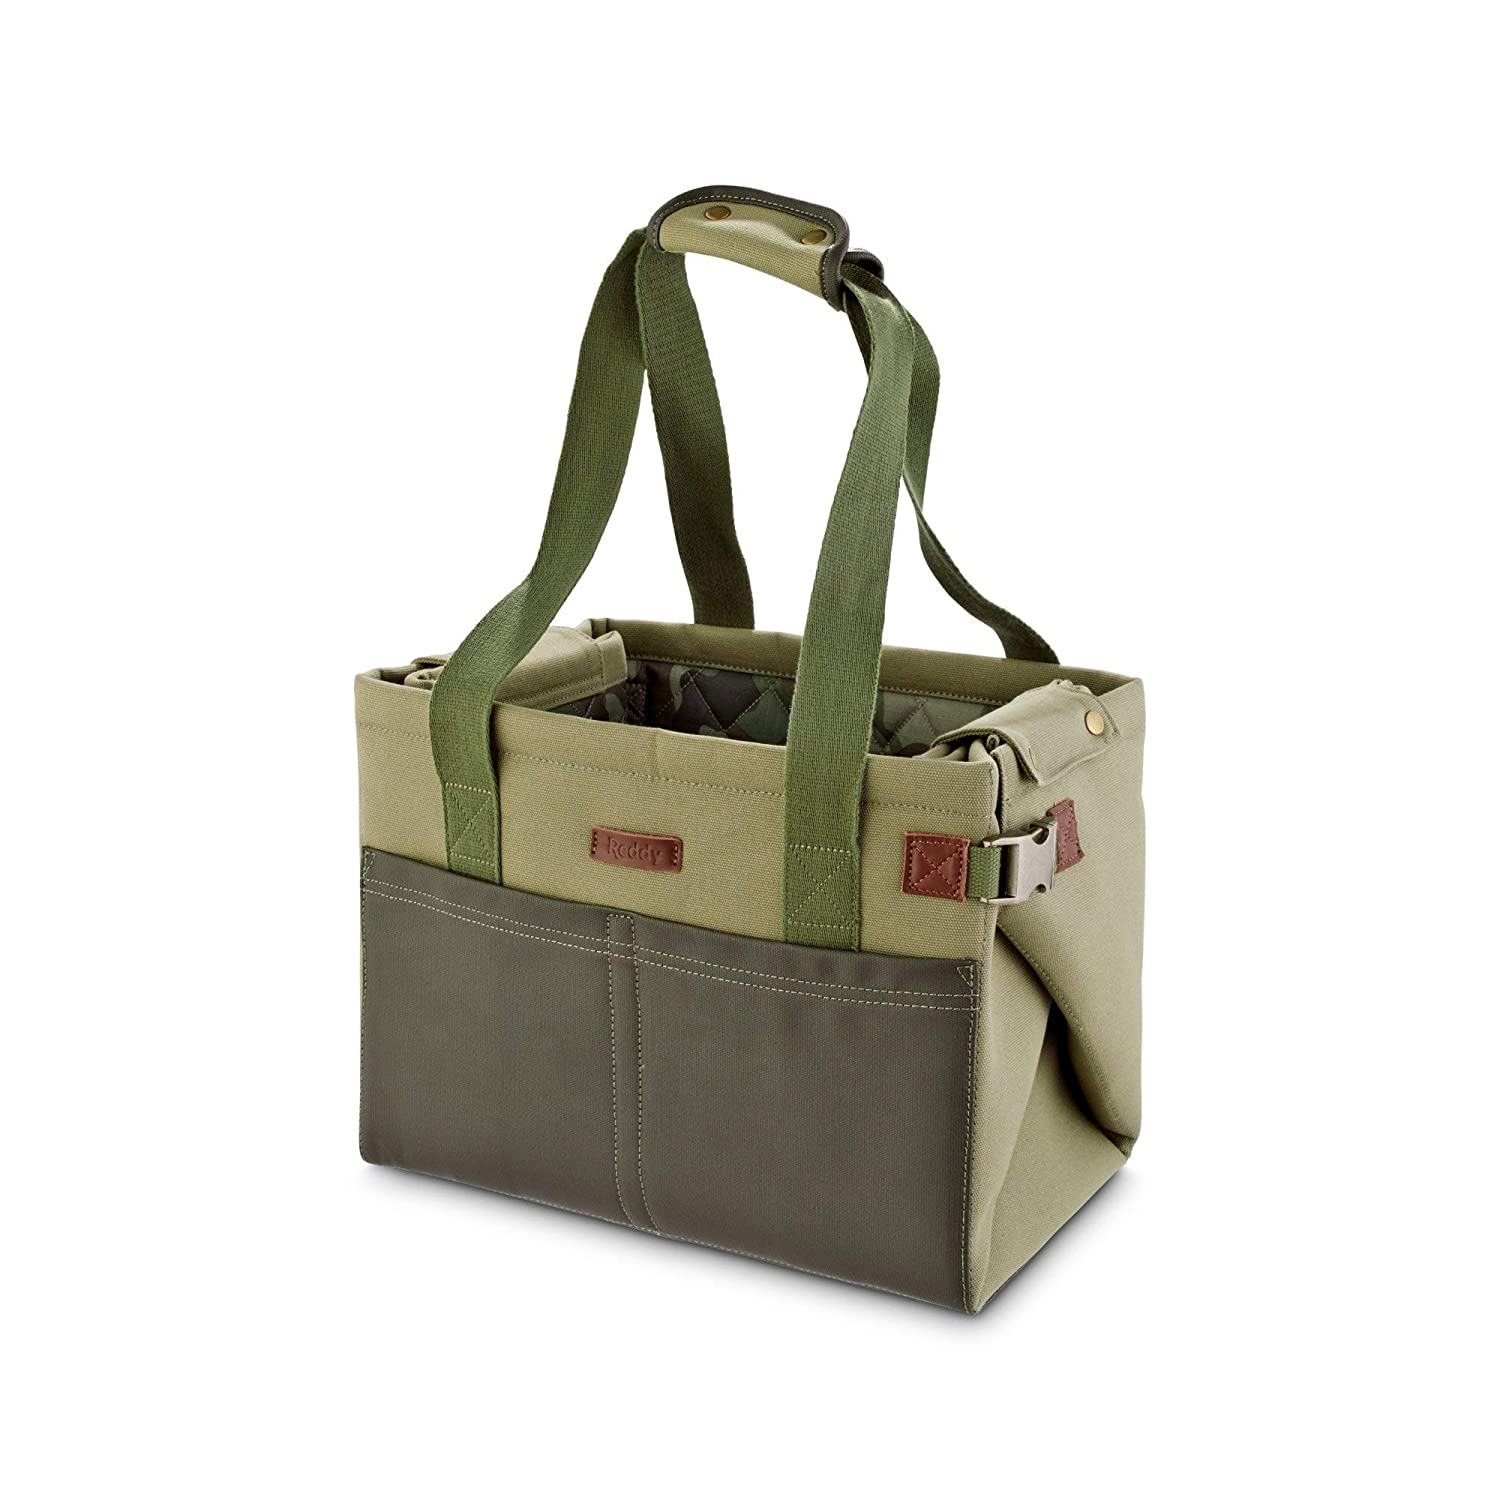 Reddy Convertible Cotton Pet Carrier and Mat in Camo